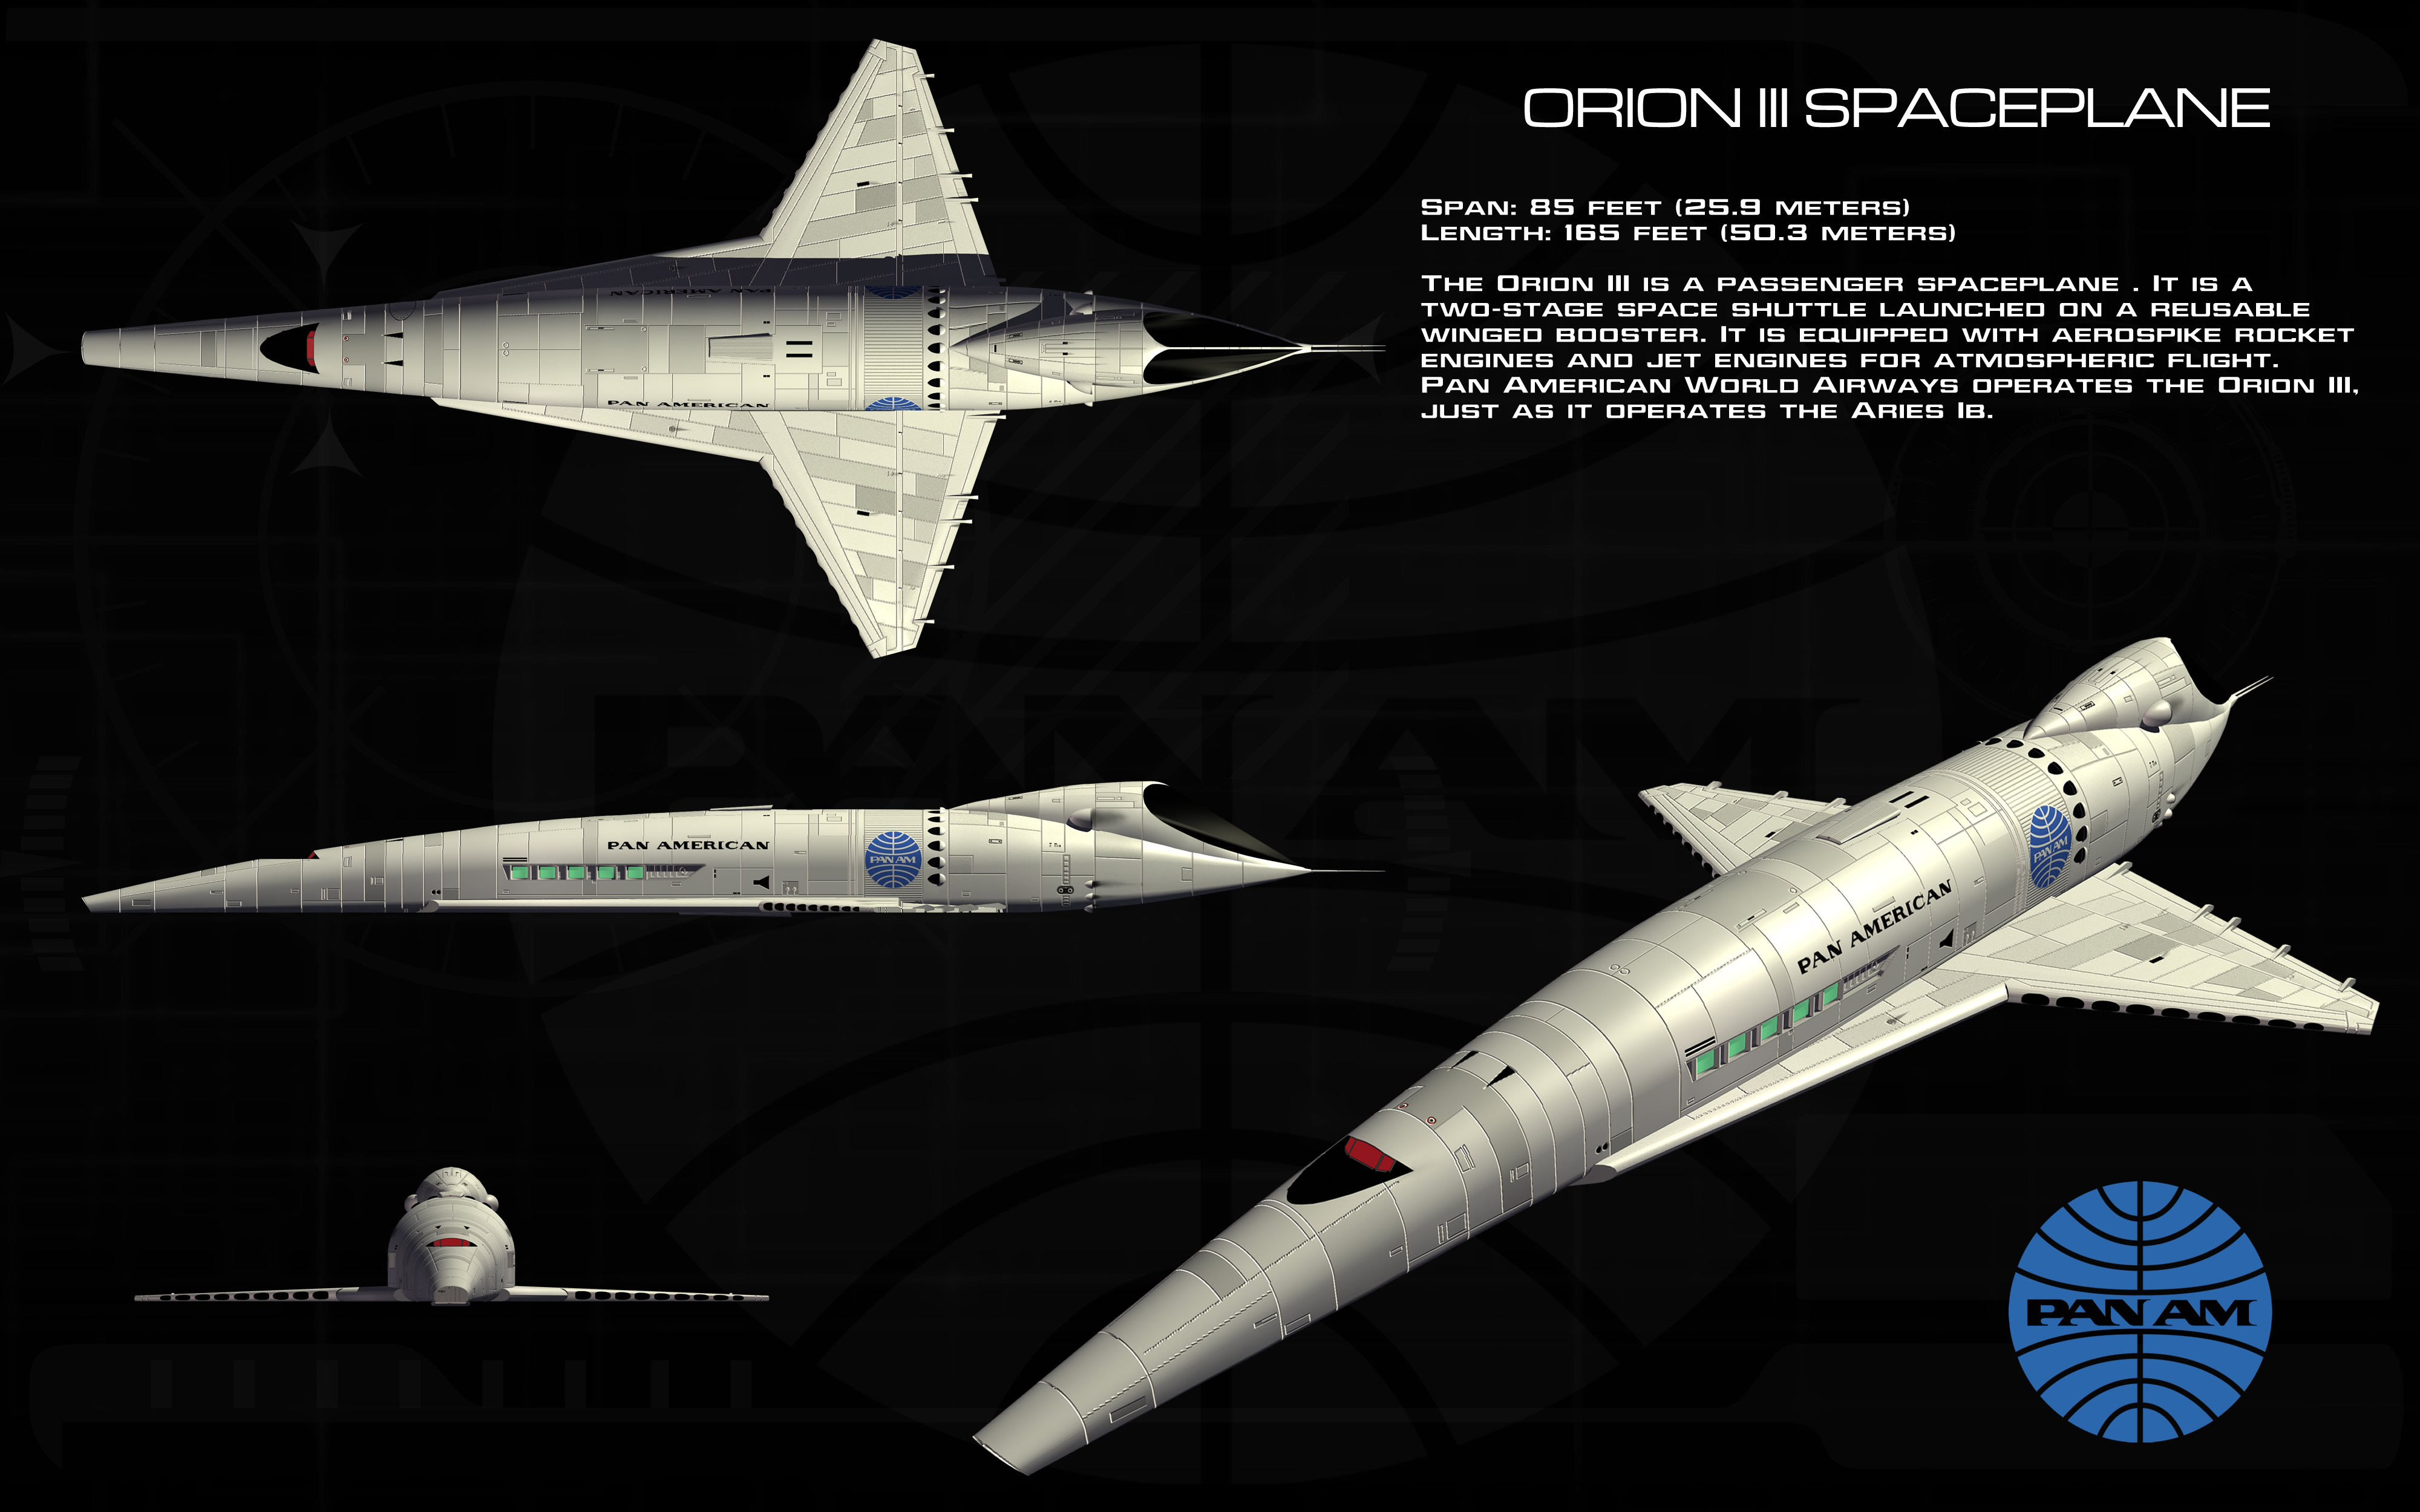 orion_iii_spaceplane_ortho_by_unusualsus